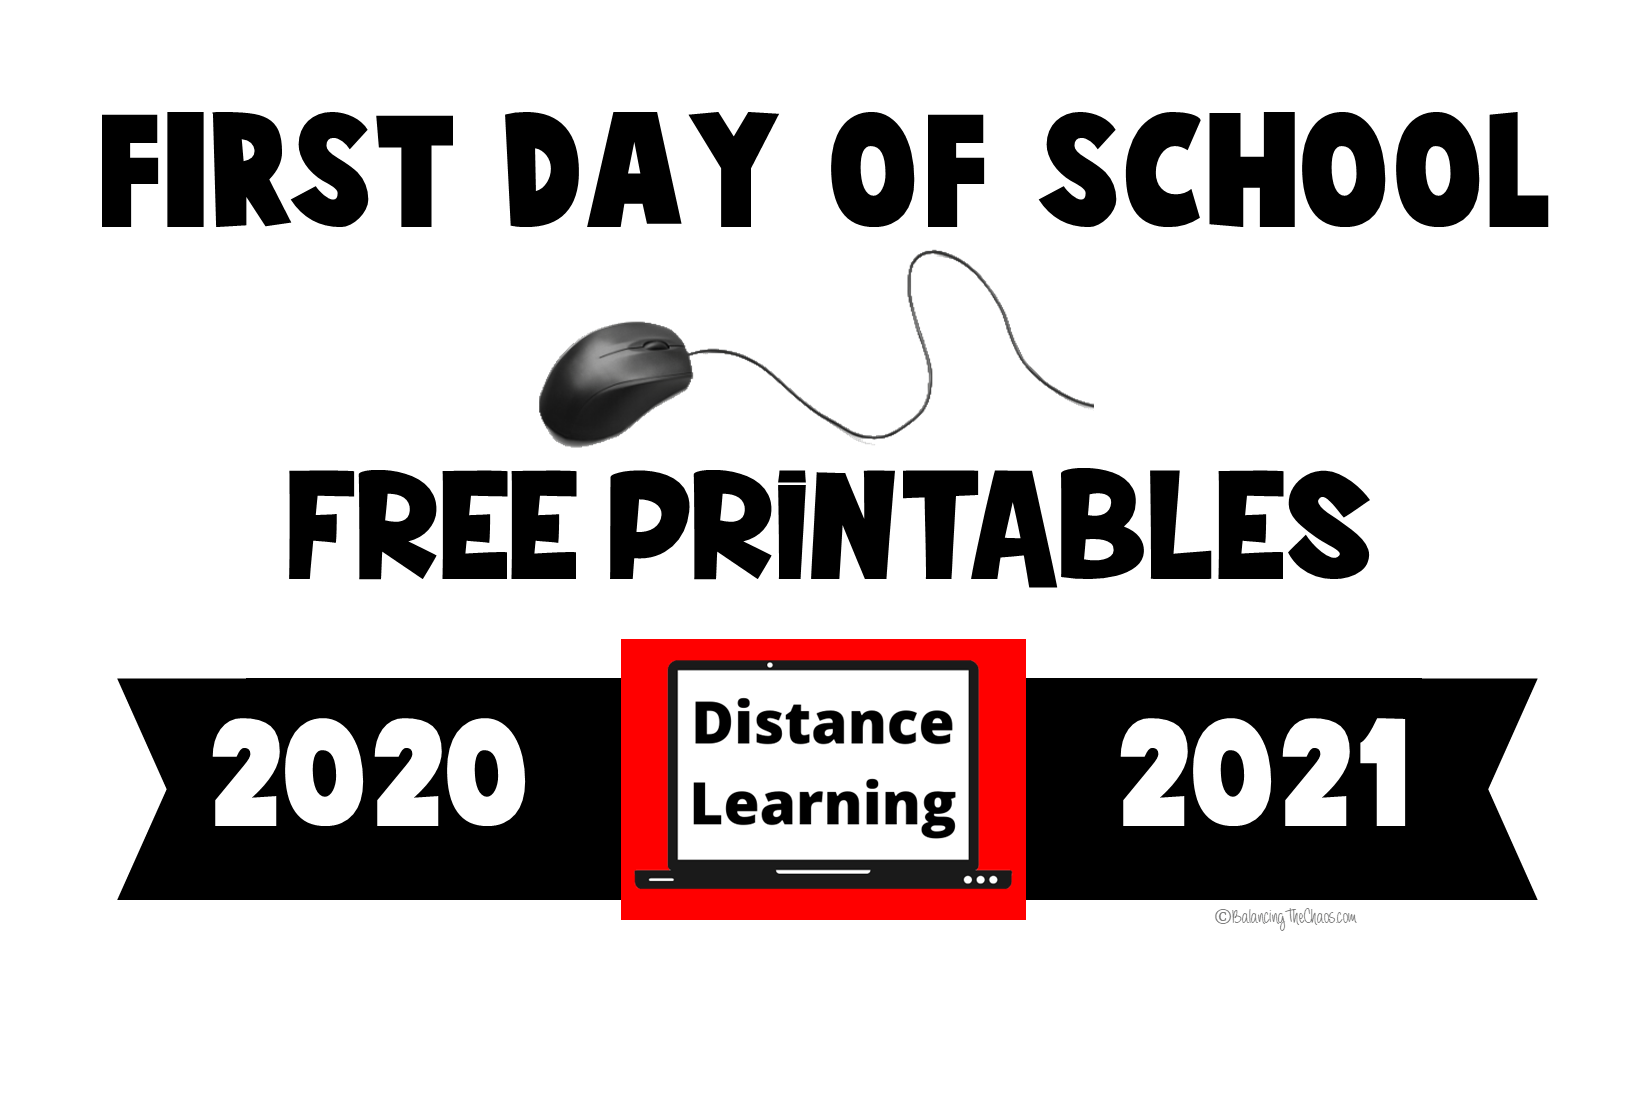 hight resolution of FREE PRINTABLES: 2020 – 2021 First Day of School Distance Learning Signs -  Balancing The Chaos